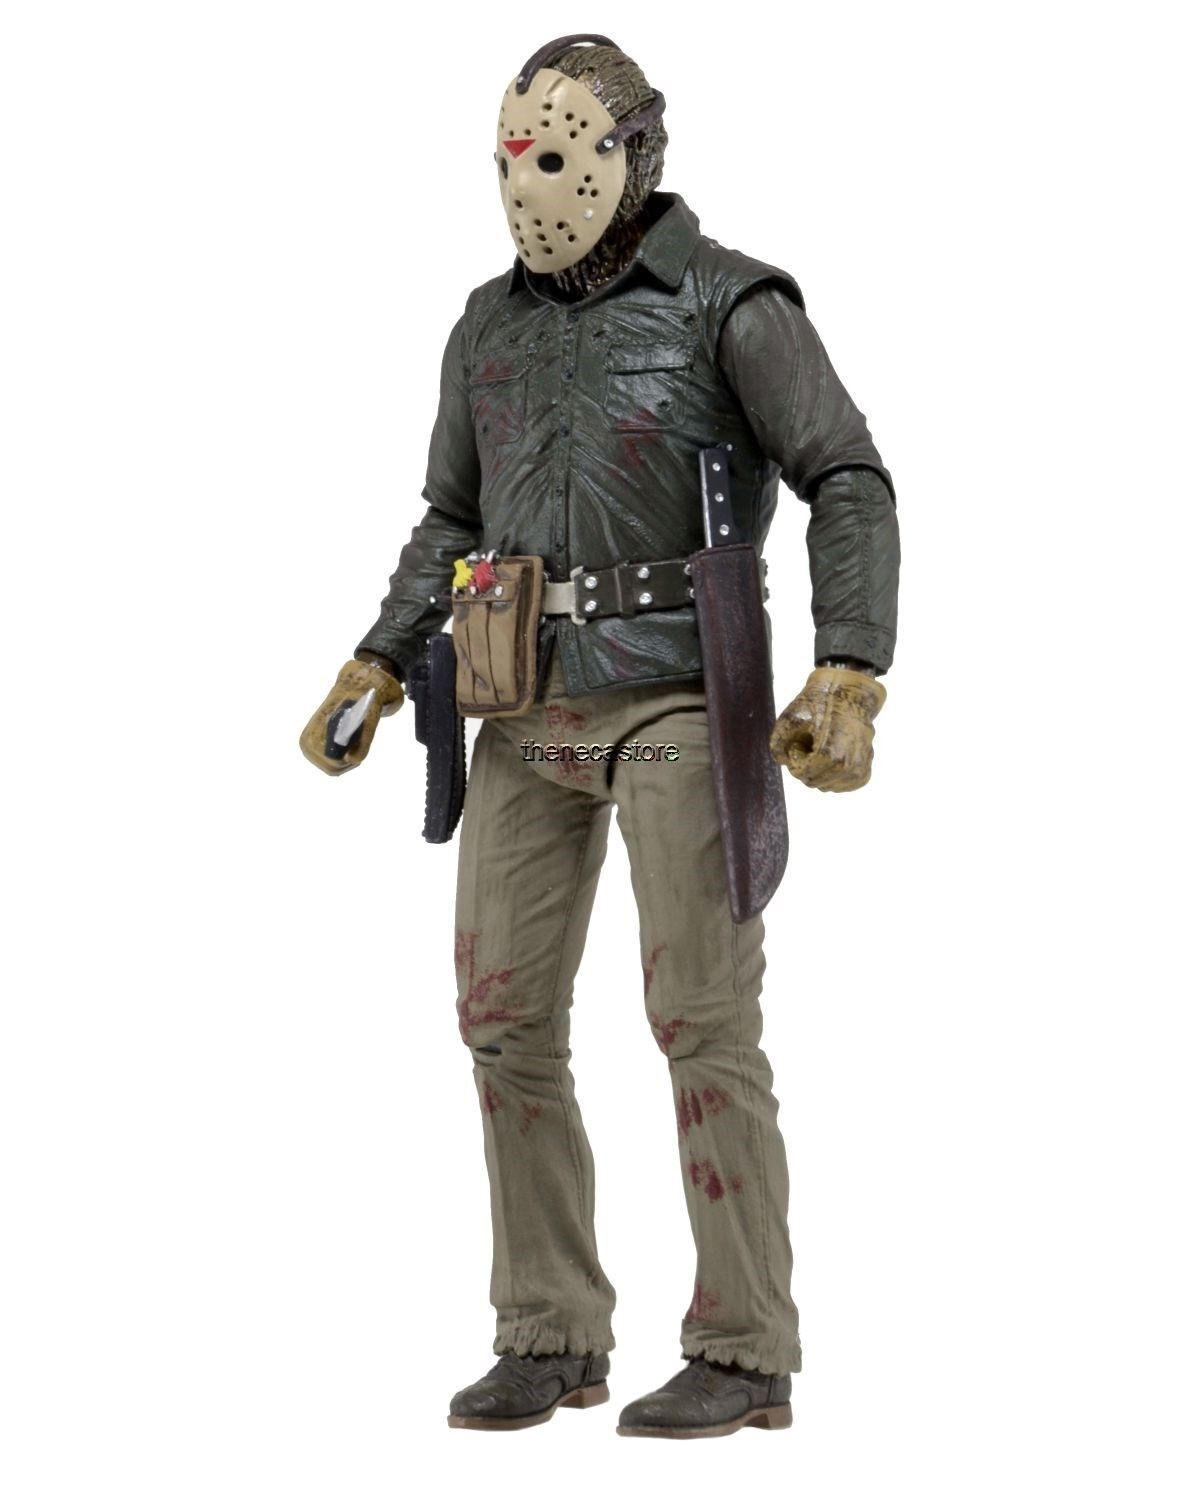 Friday The 13th 7 Scale Action Figure Ultimate Part 6 Jason Voorhees Neca Jason Toys Jason Part 7 Neca